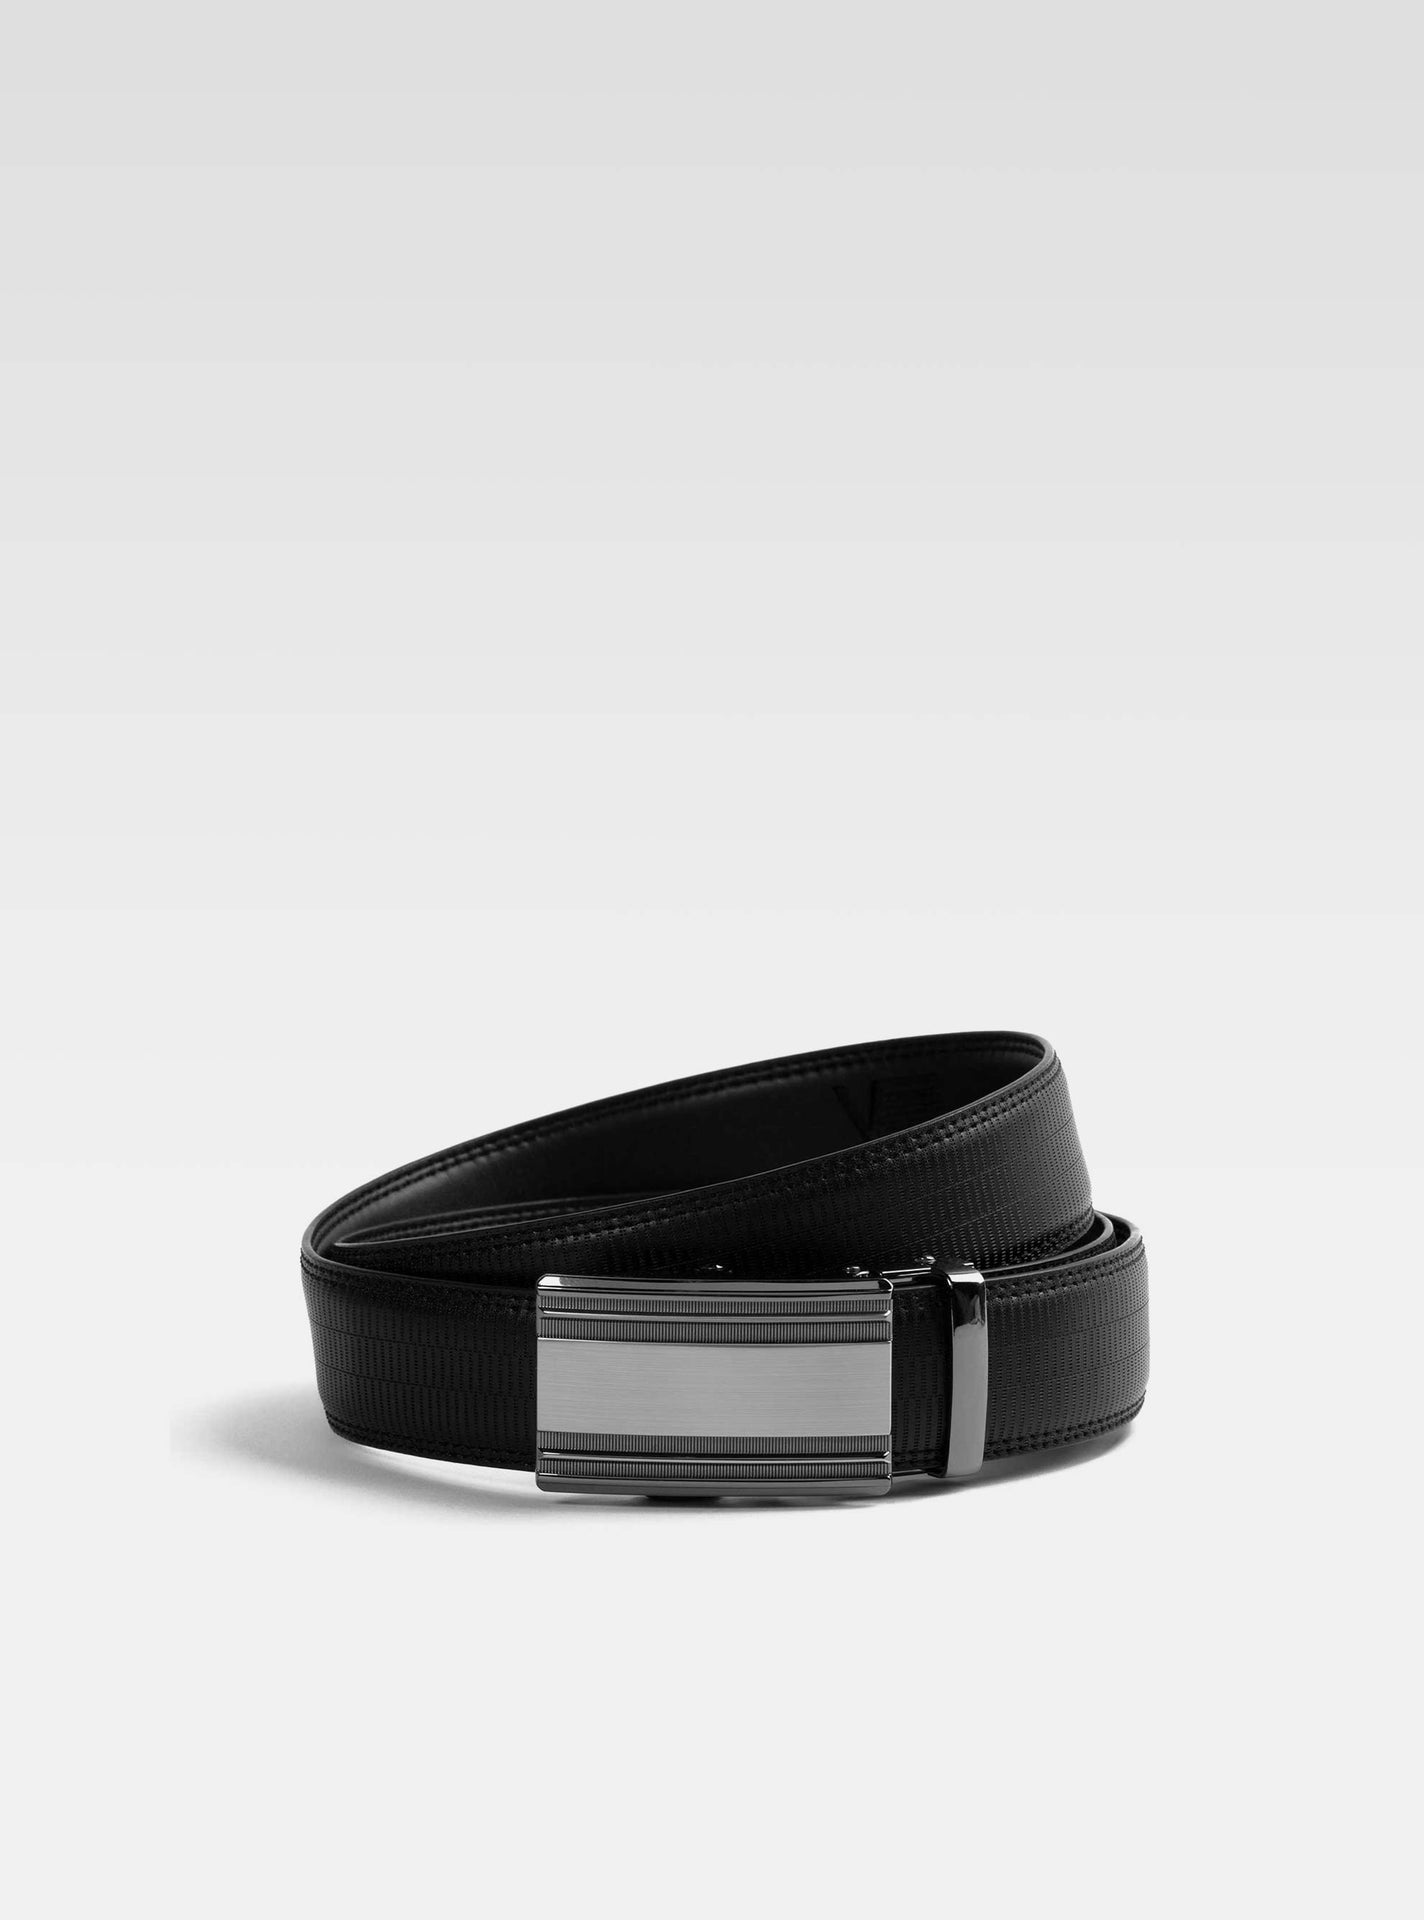 Black adjustable automatic belt.